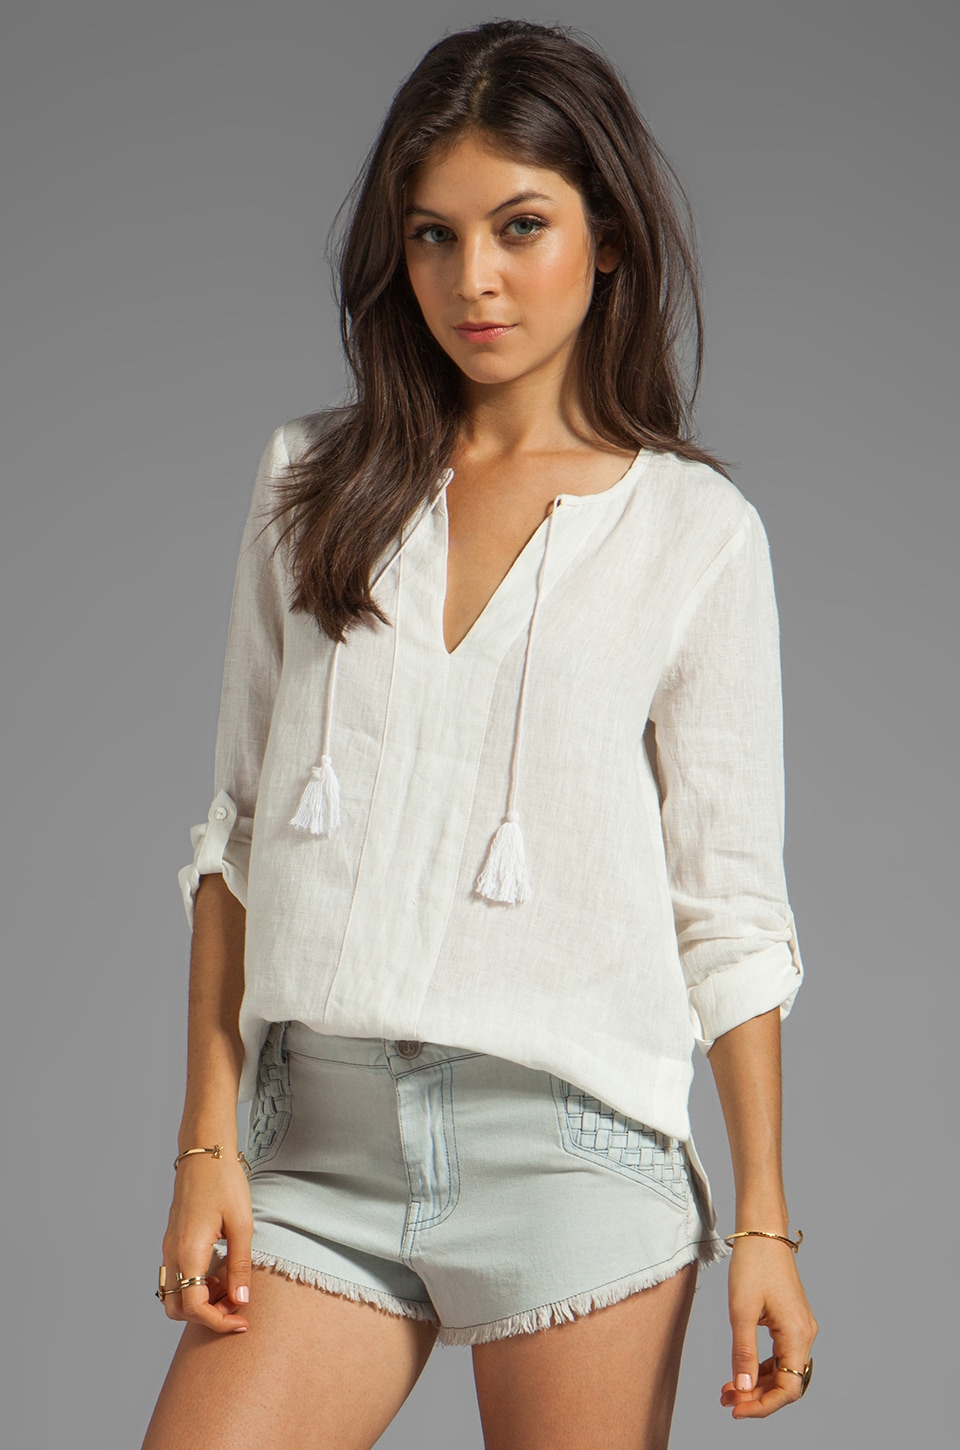 Soft Joie Minda Top in Porcelain